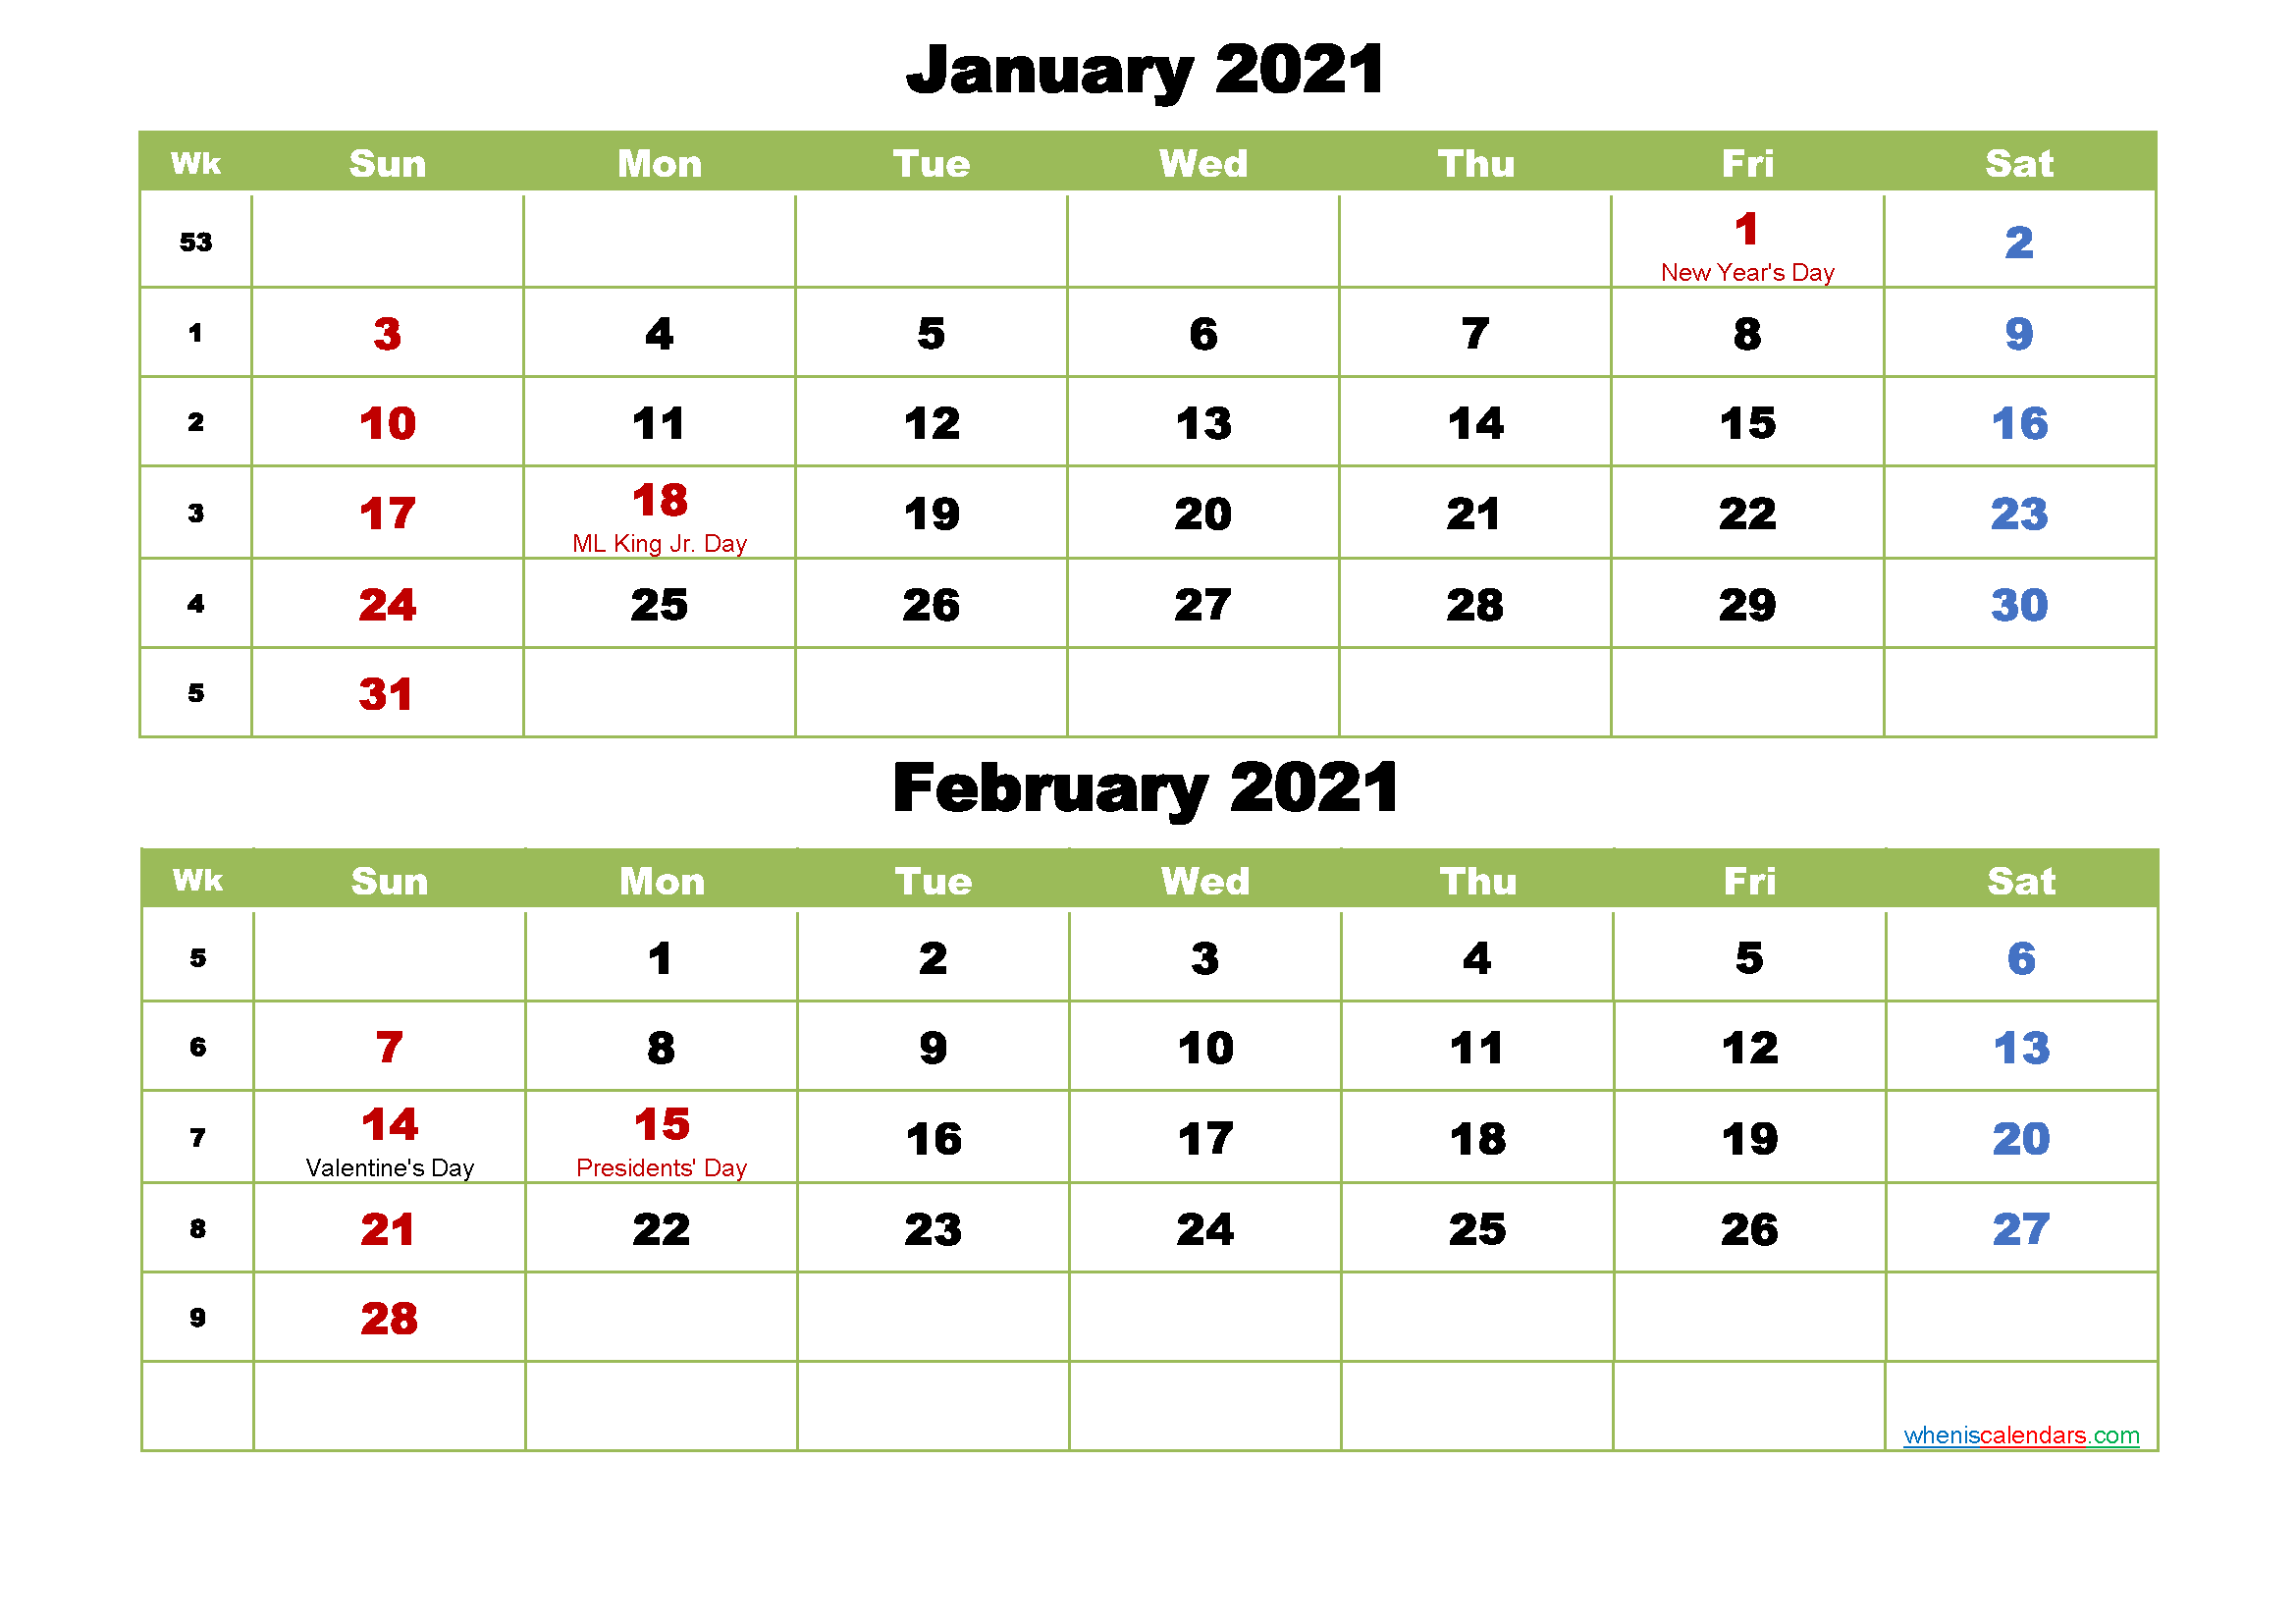 January and February 2021 Calendar with Holidays